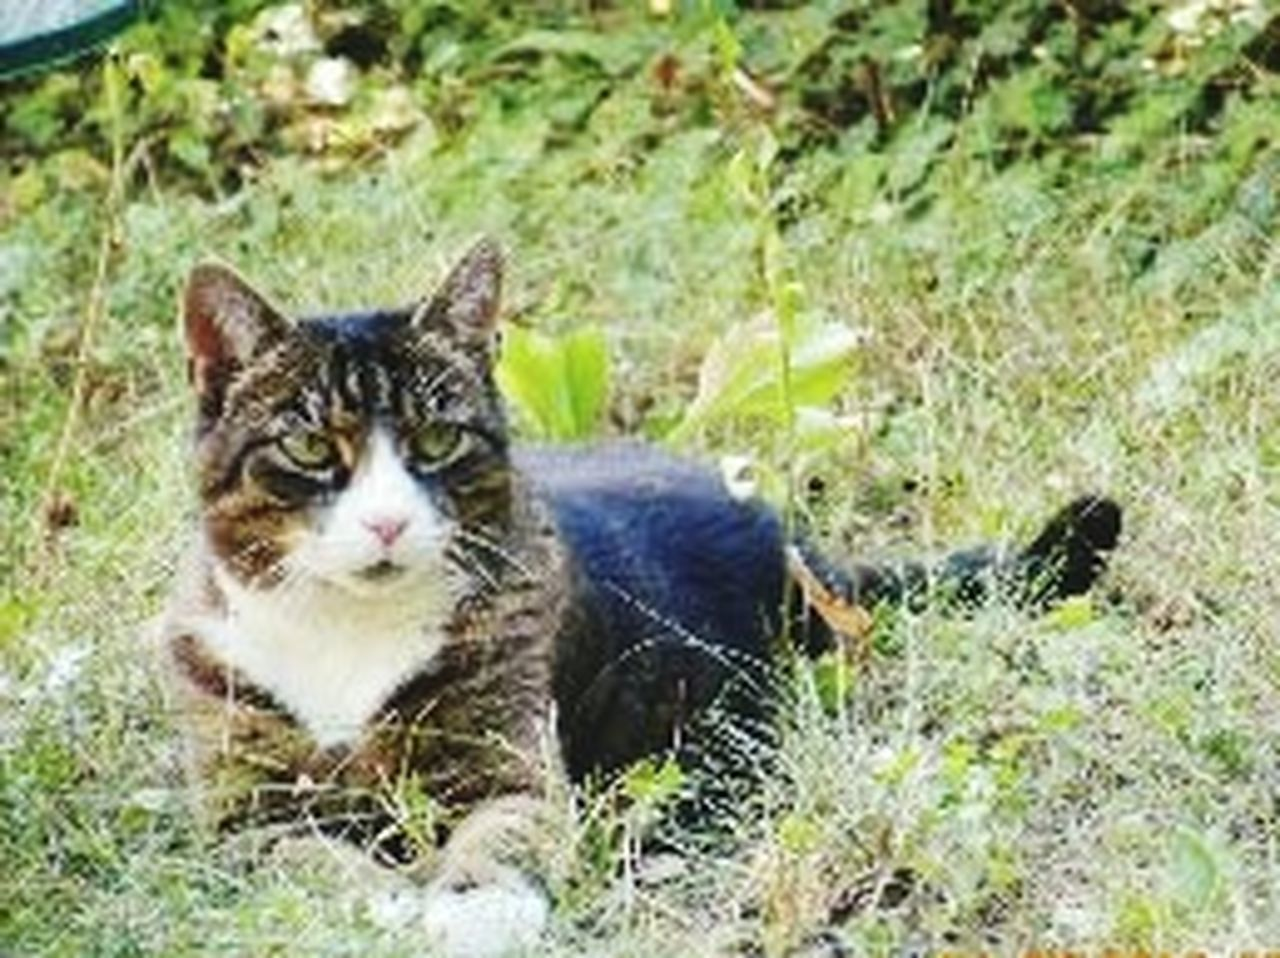 domestic cat, pets, domestic animals, one animal, animal themes, feline, looking at camera, grass, mammal, portrait, outdoors, day, no people, sitting, full length